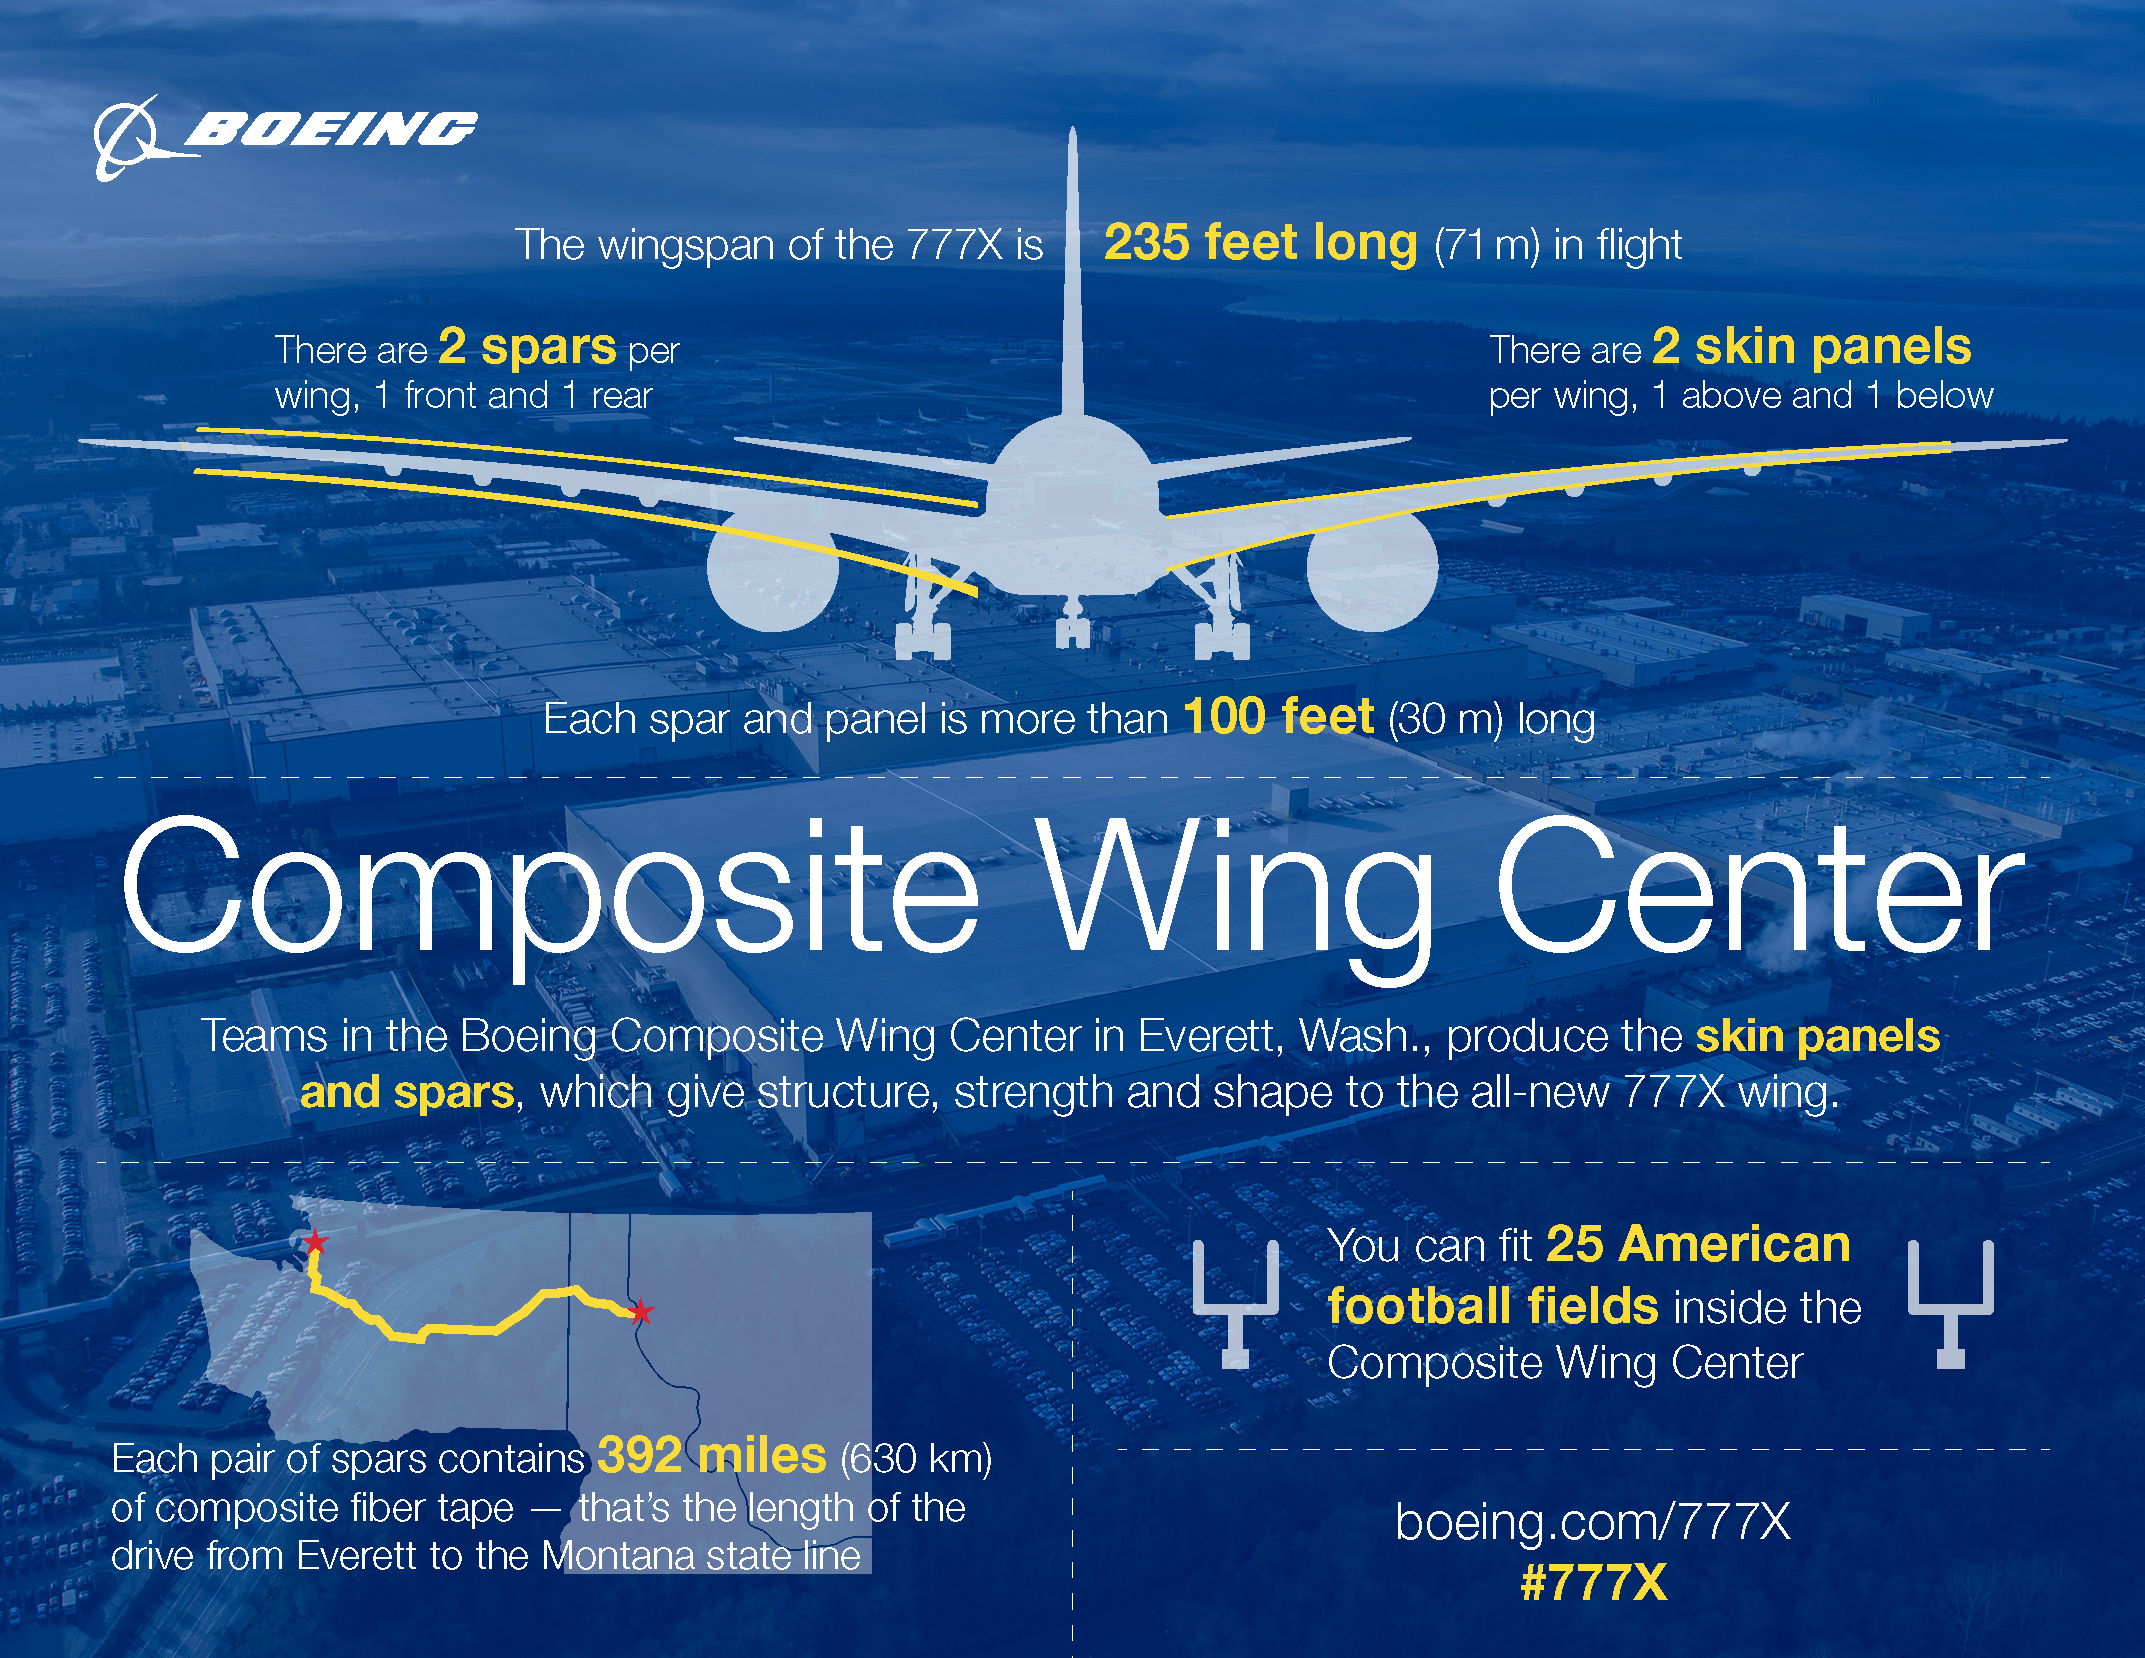 Boeing Infographic Composite Wing Center